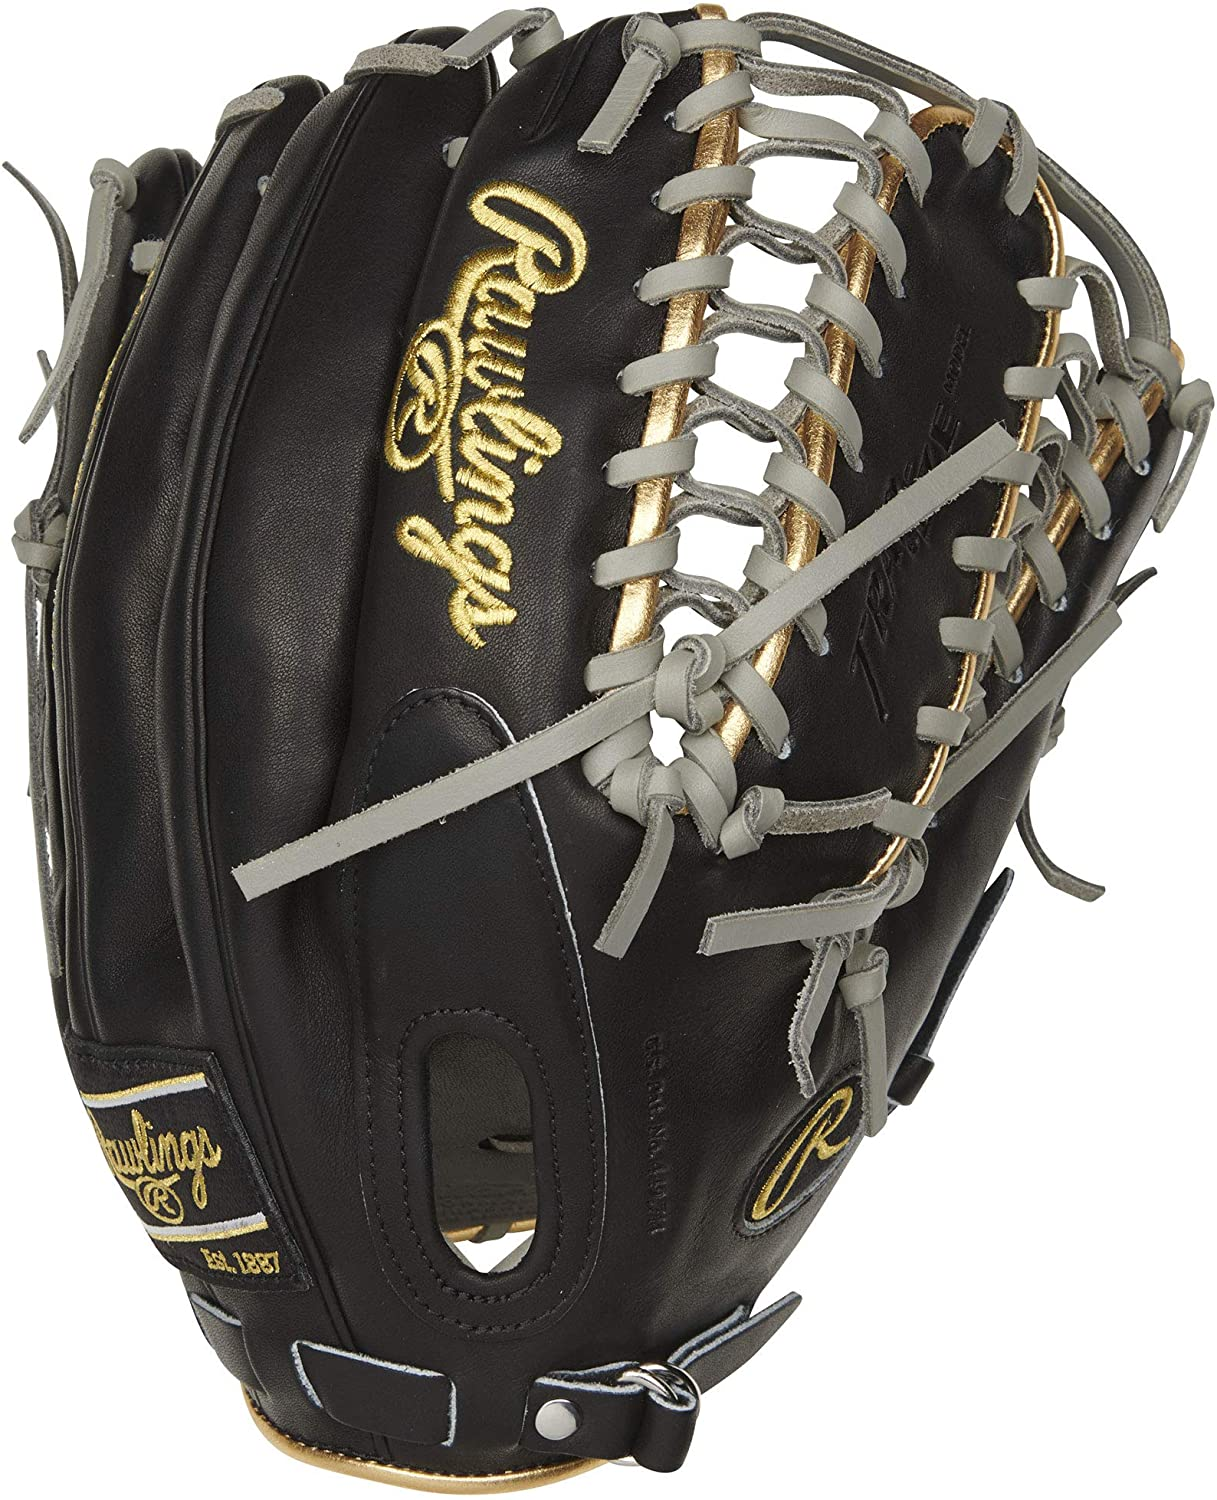 rawlings-pro-preferred-12-75-baseball-glove-mike-trout-right-hand-throw PROSMT27B-RightHandThrow Rawlings 083321699856 Crafted from flawless kip leather the Rawlings 2021 Pro Preferred 12.75-inch